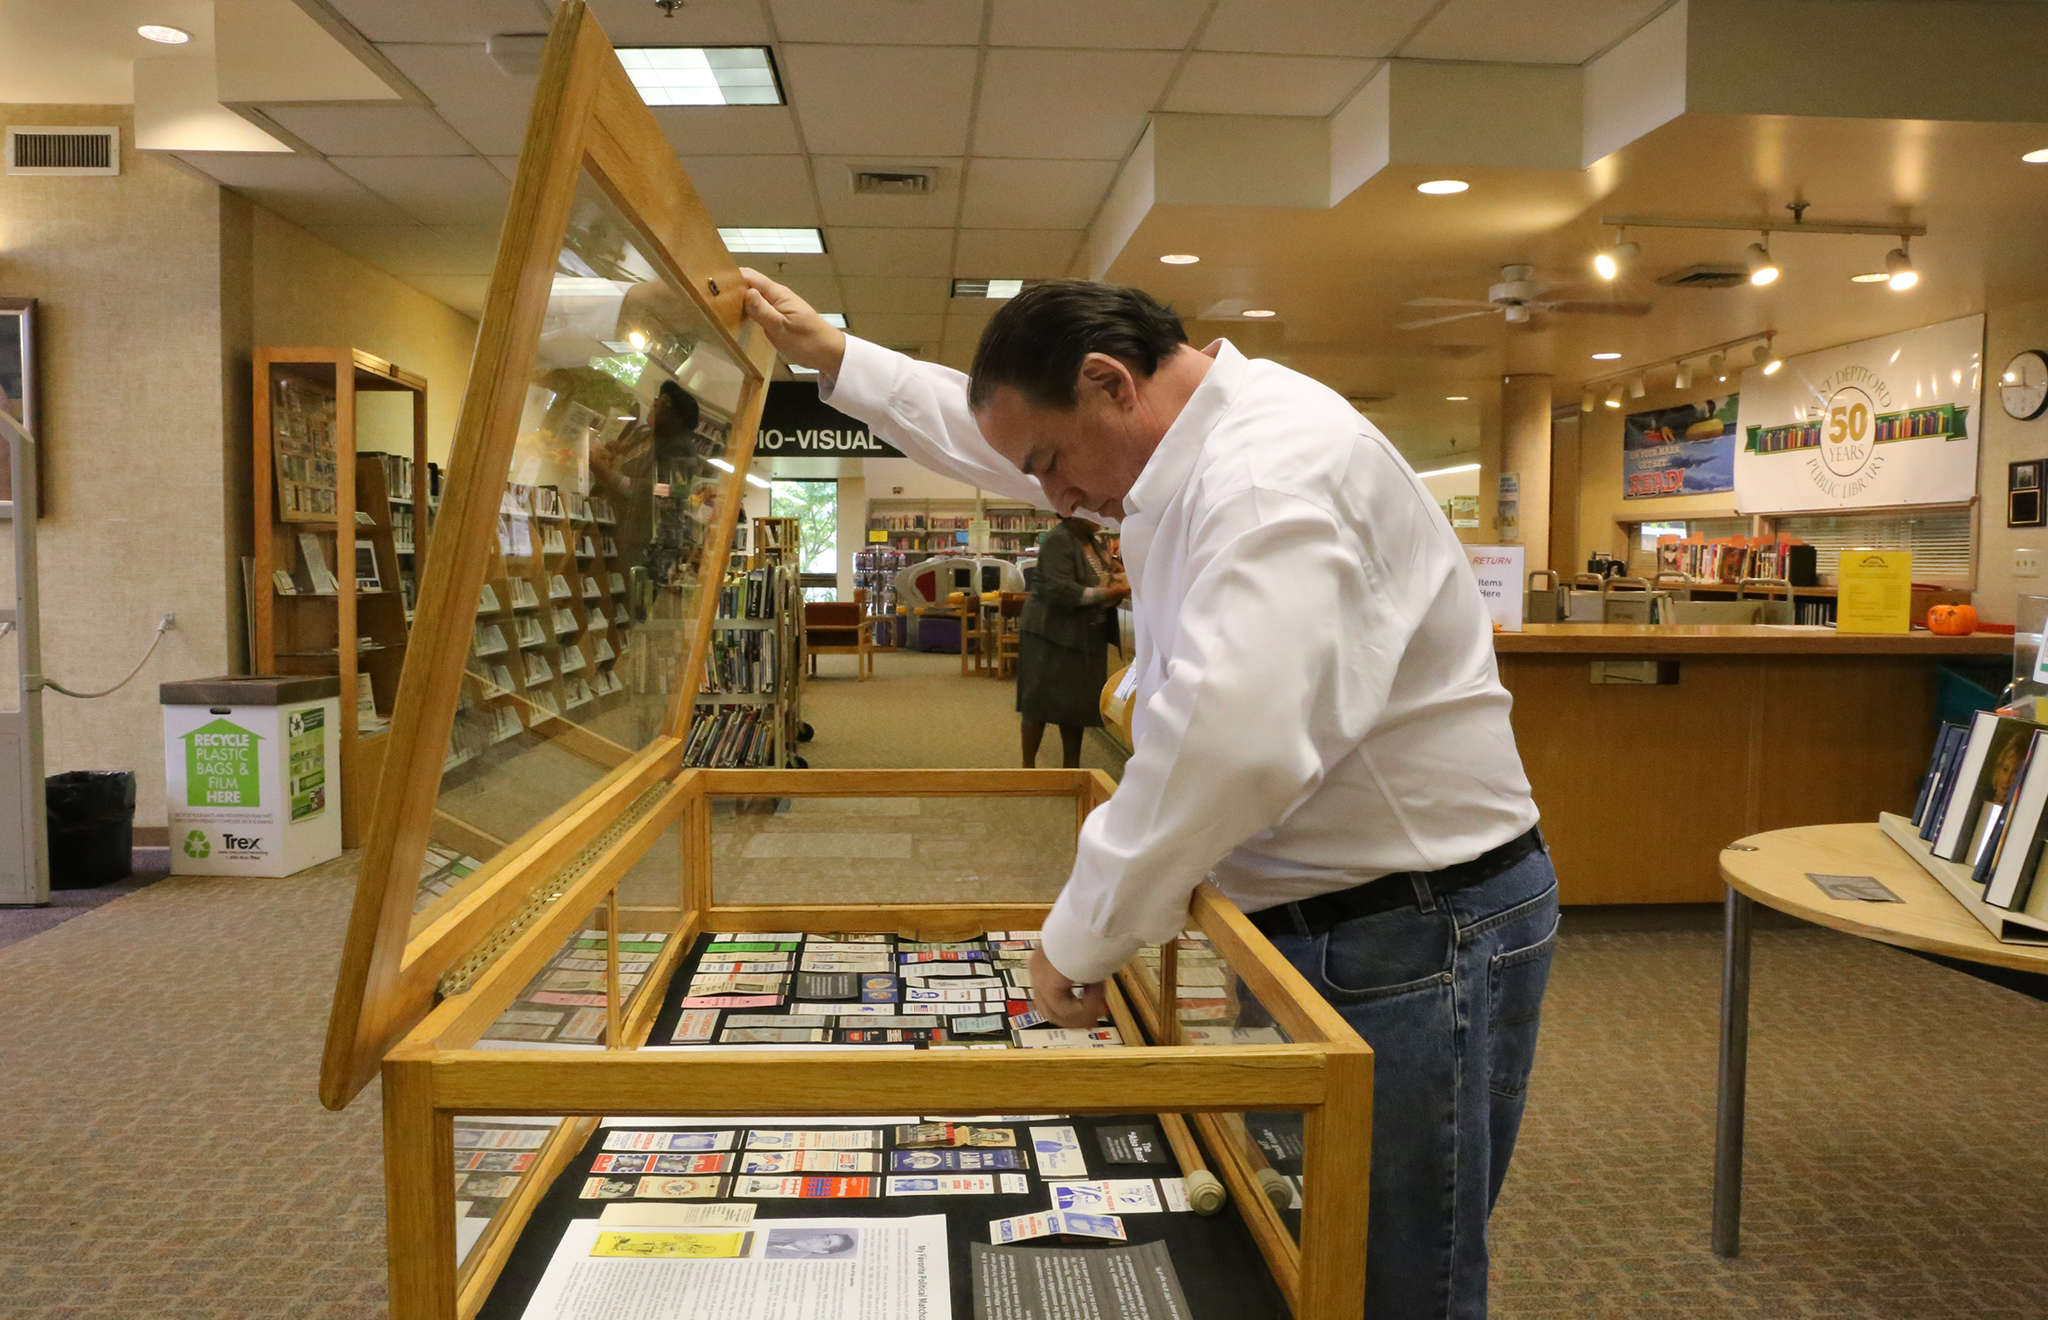 Richard Greene curated a selection of political matchbook covers for an exhibition at the West Deptford library.